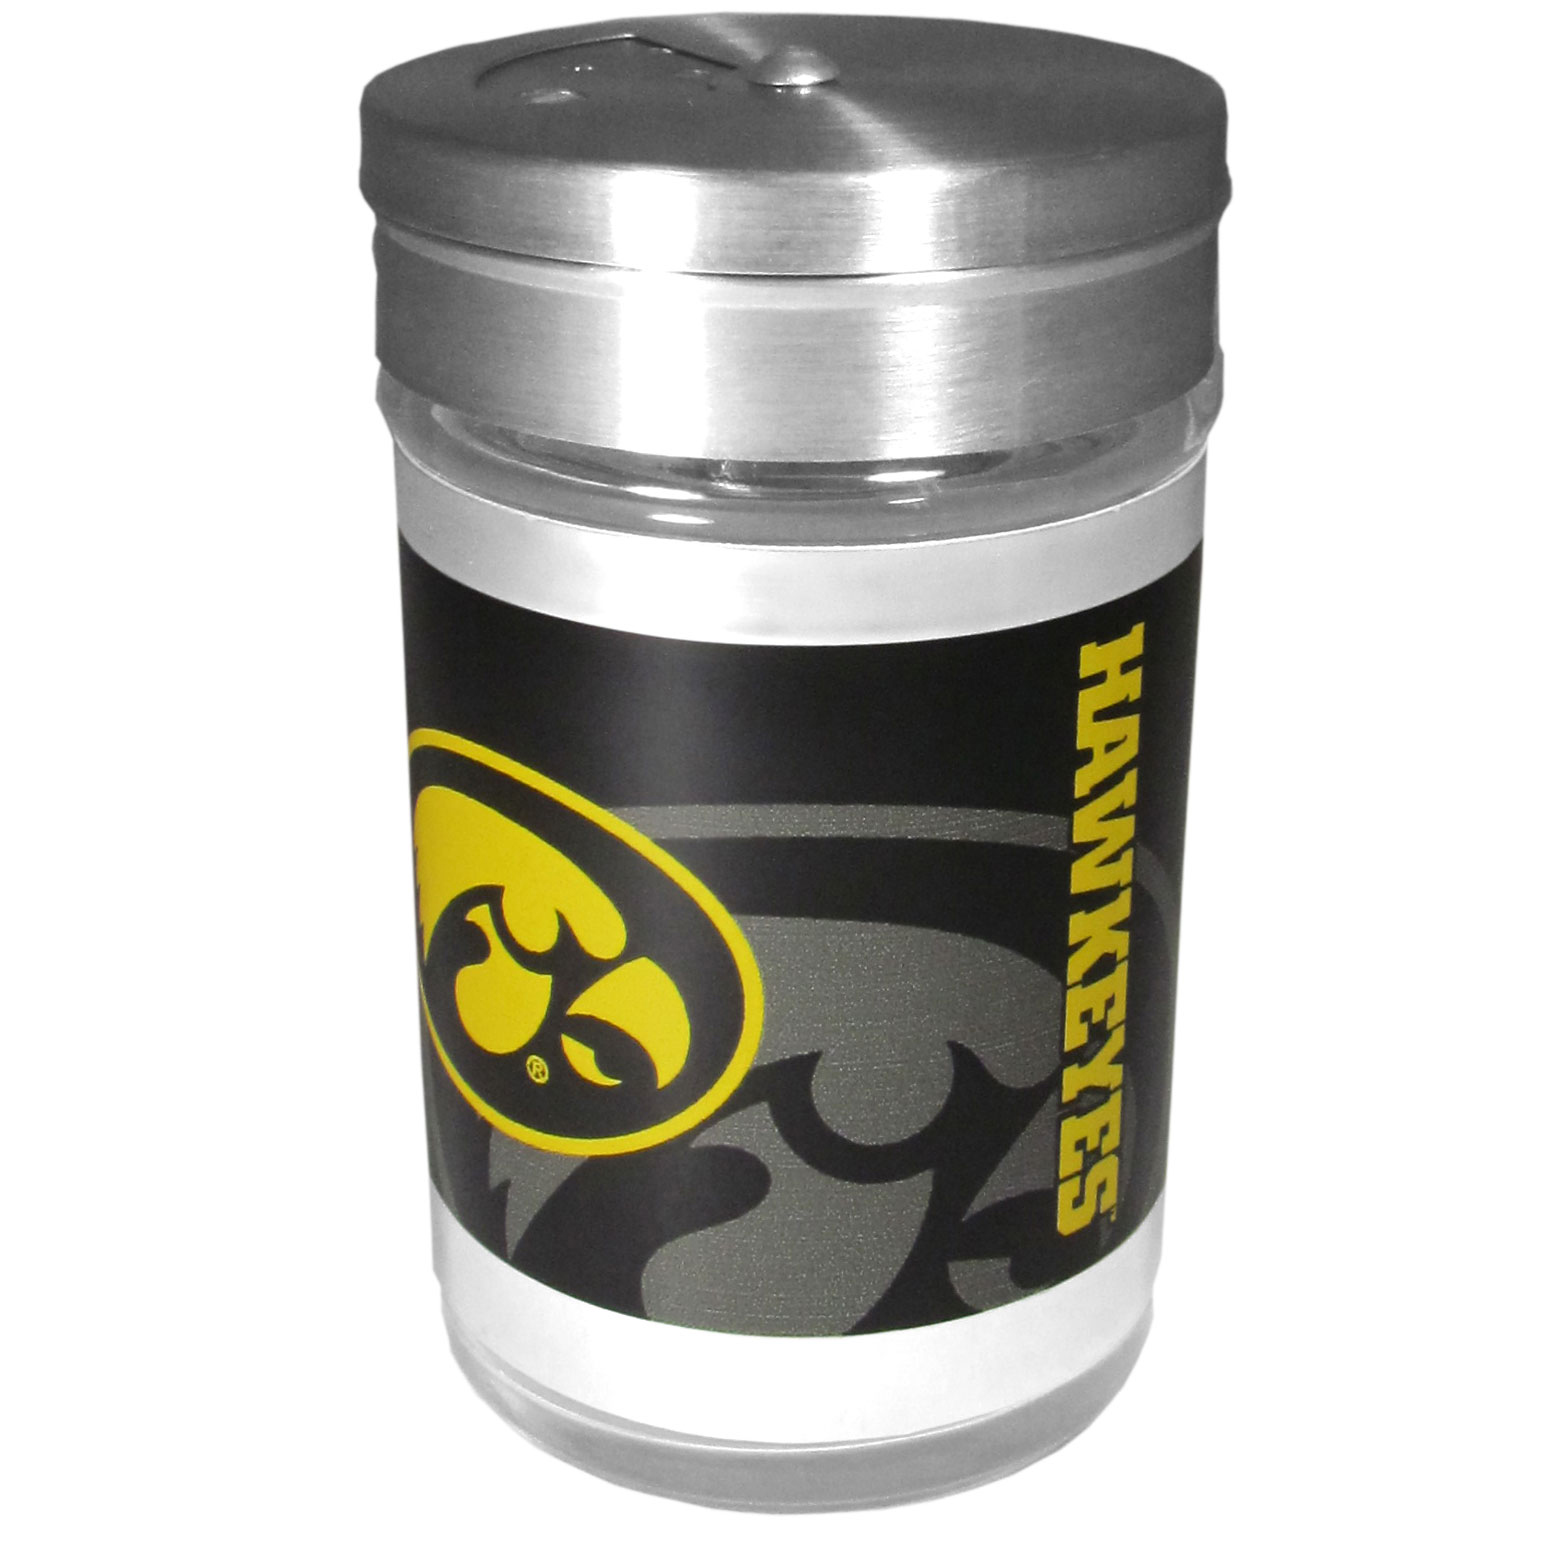 Iowa Hawkeyes Tailgater Season Shakers - Spice it up with our Iowa Hawkeyes tailgater season shakers! This compact shaker is 2 inch tall with a twist top that closes off the holes at the top making it perfect for travel preventing those messy spills. The shaker has wide holes perfect for keeping your pepper seeds or cheese toppings. The bright team graphics will make you the envy of the other fans while you are grilling up your tailgating goodies.